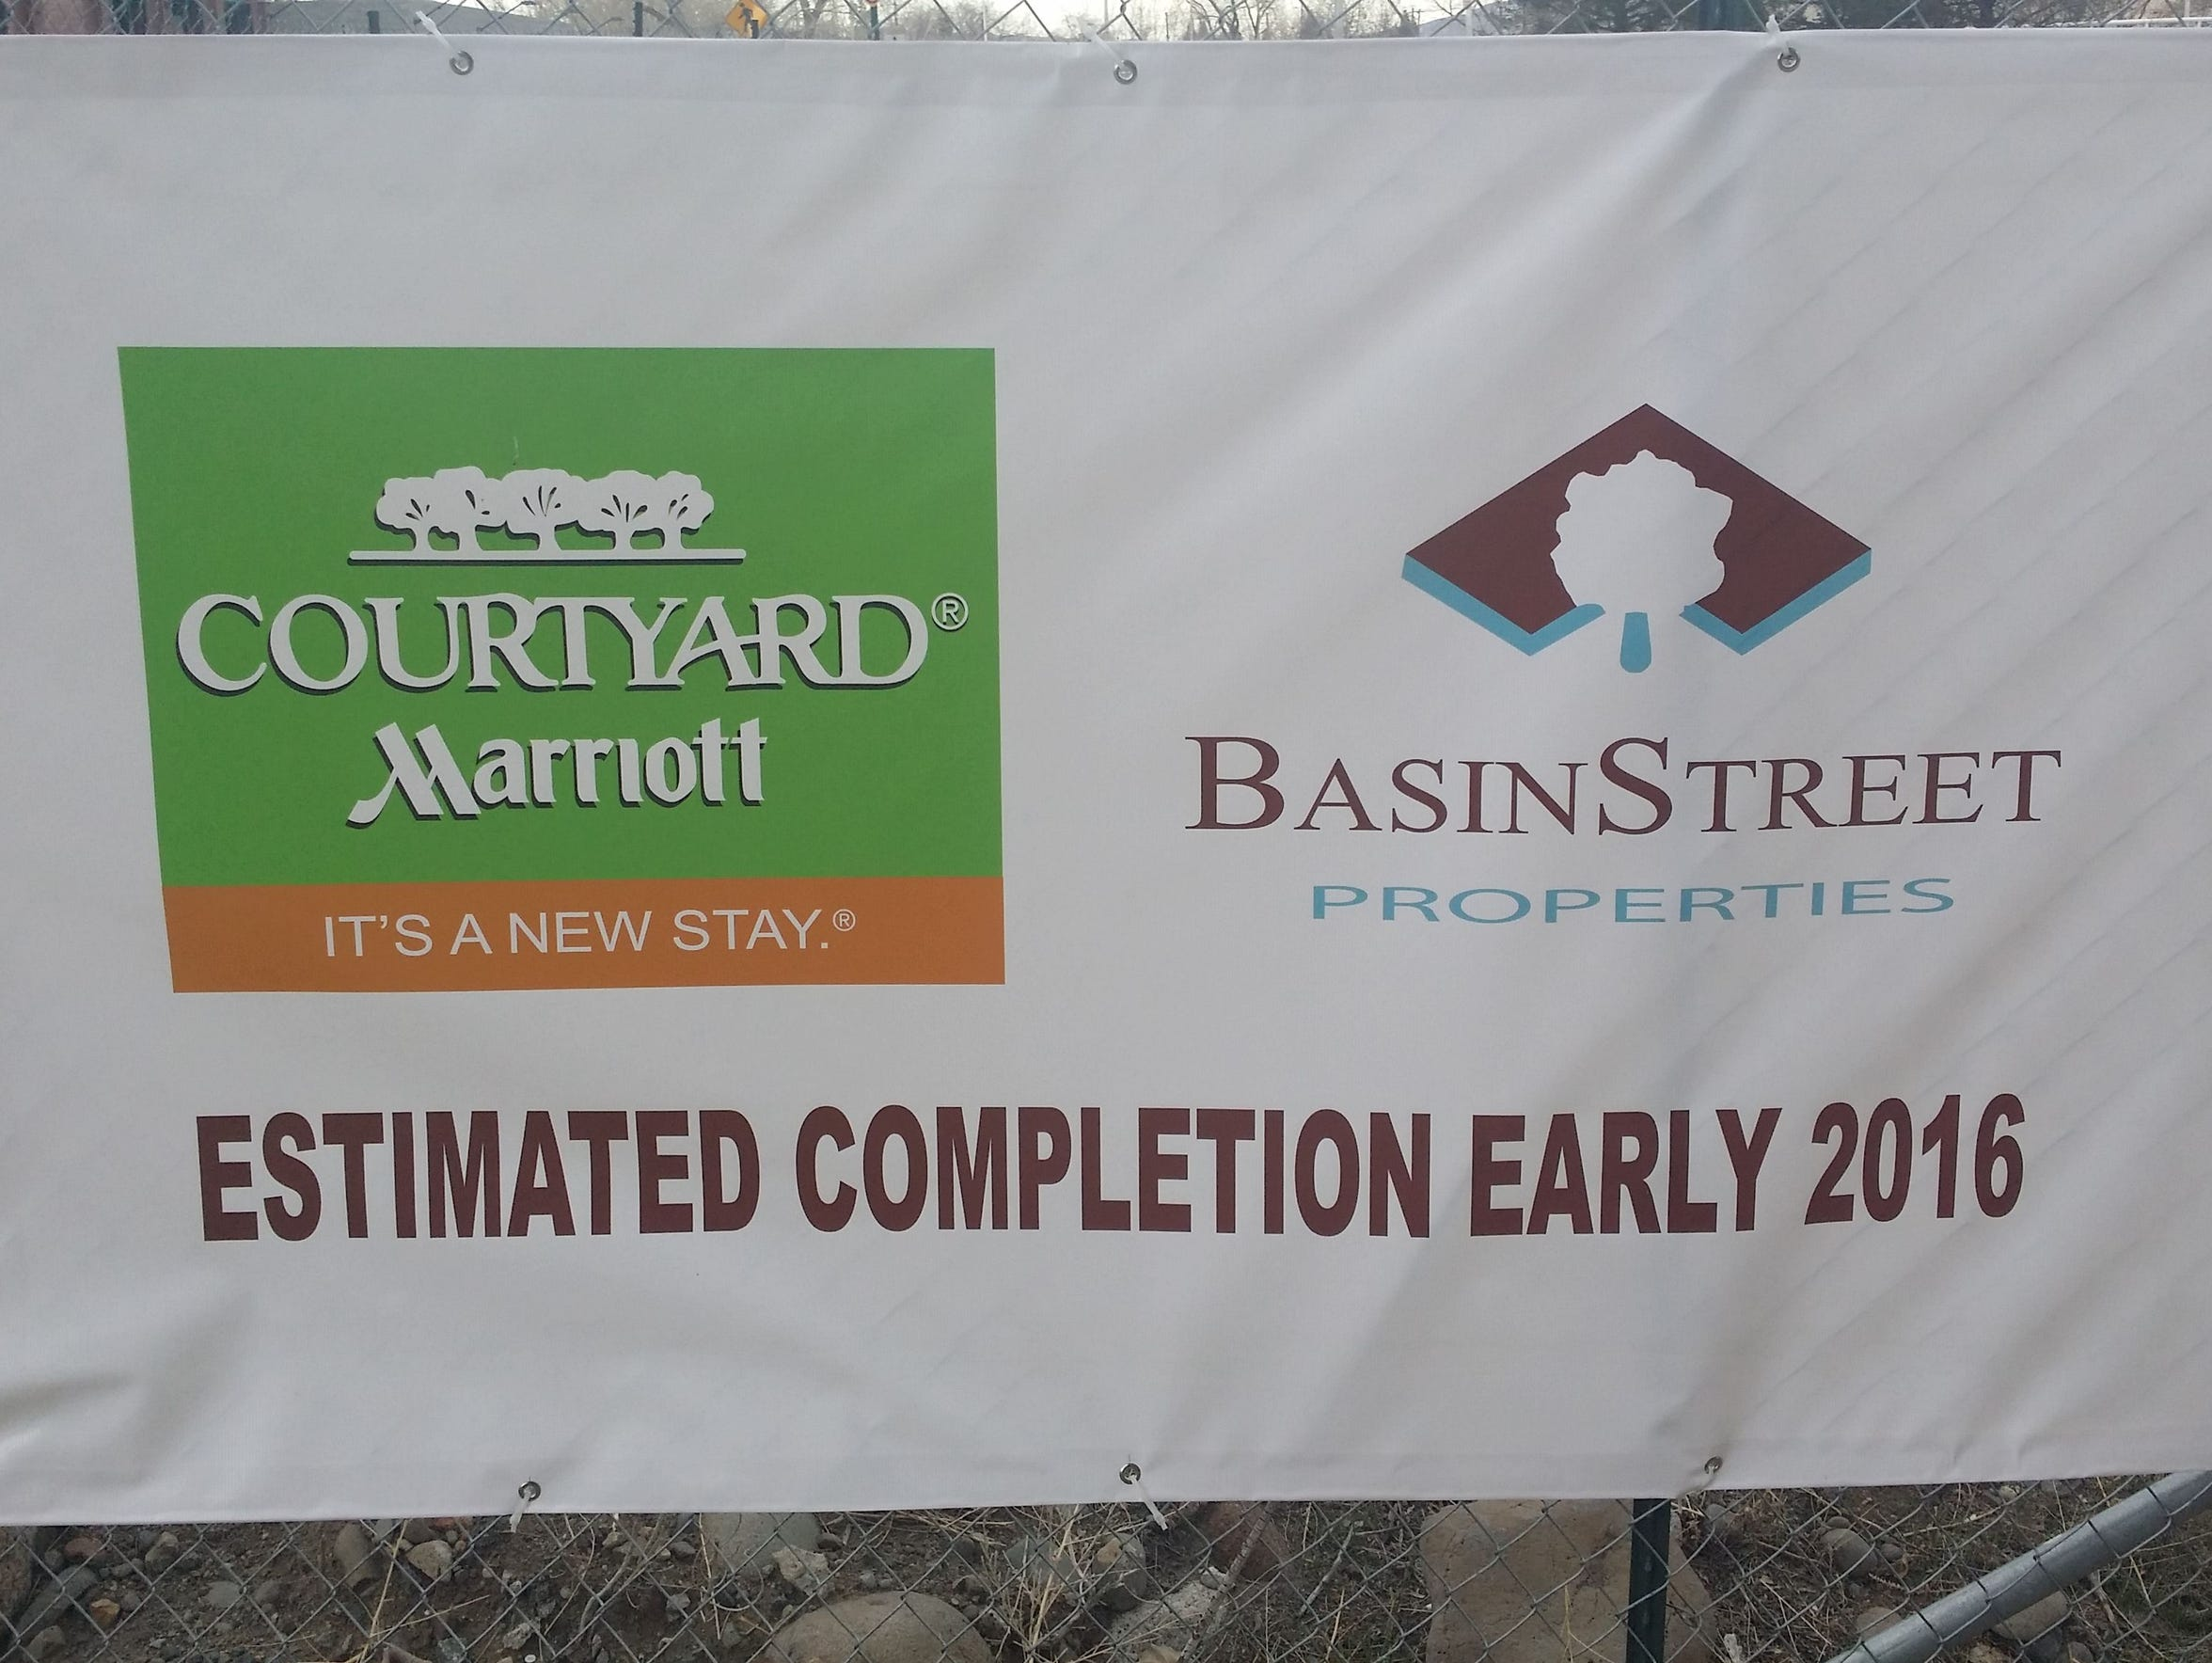 A Courtyard by Marriott is planned in downtown Reno